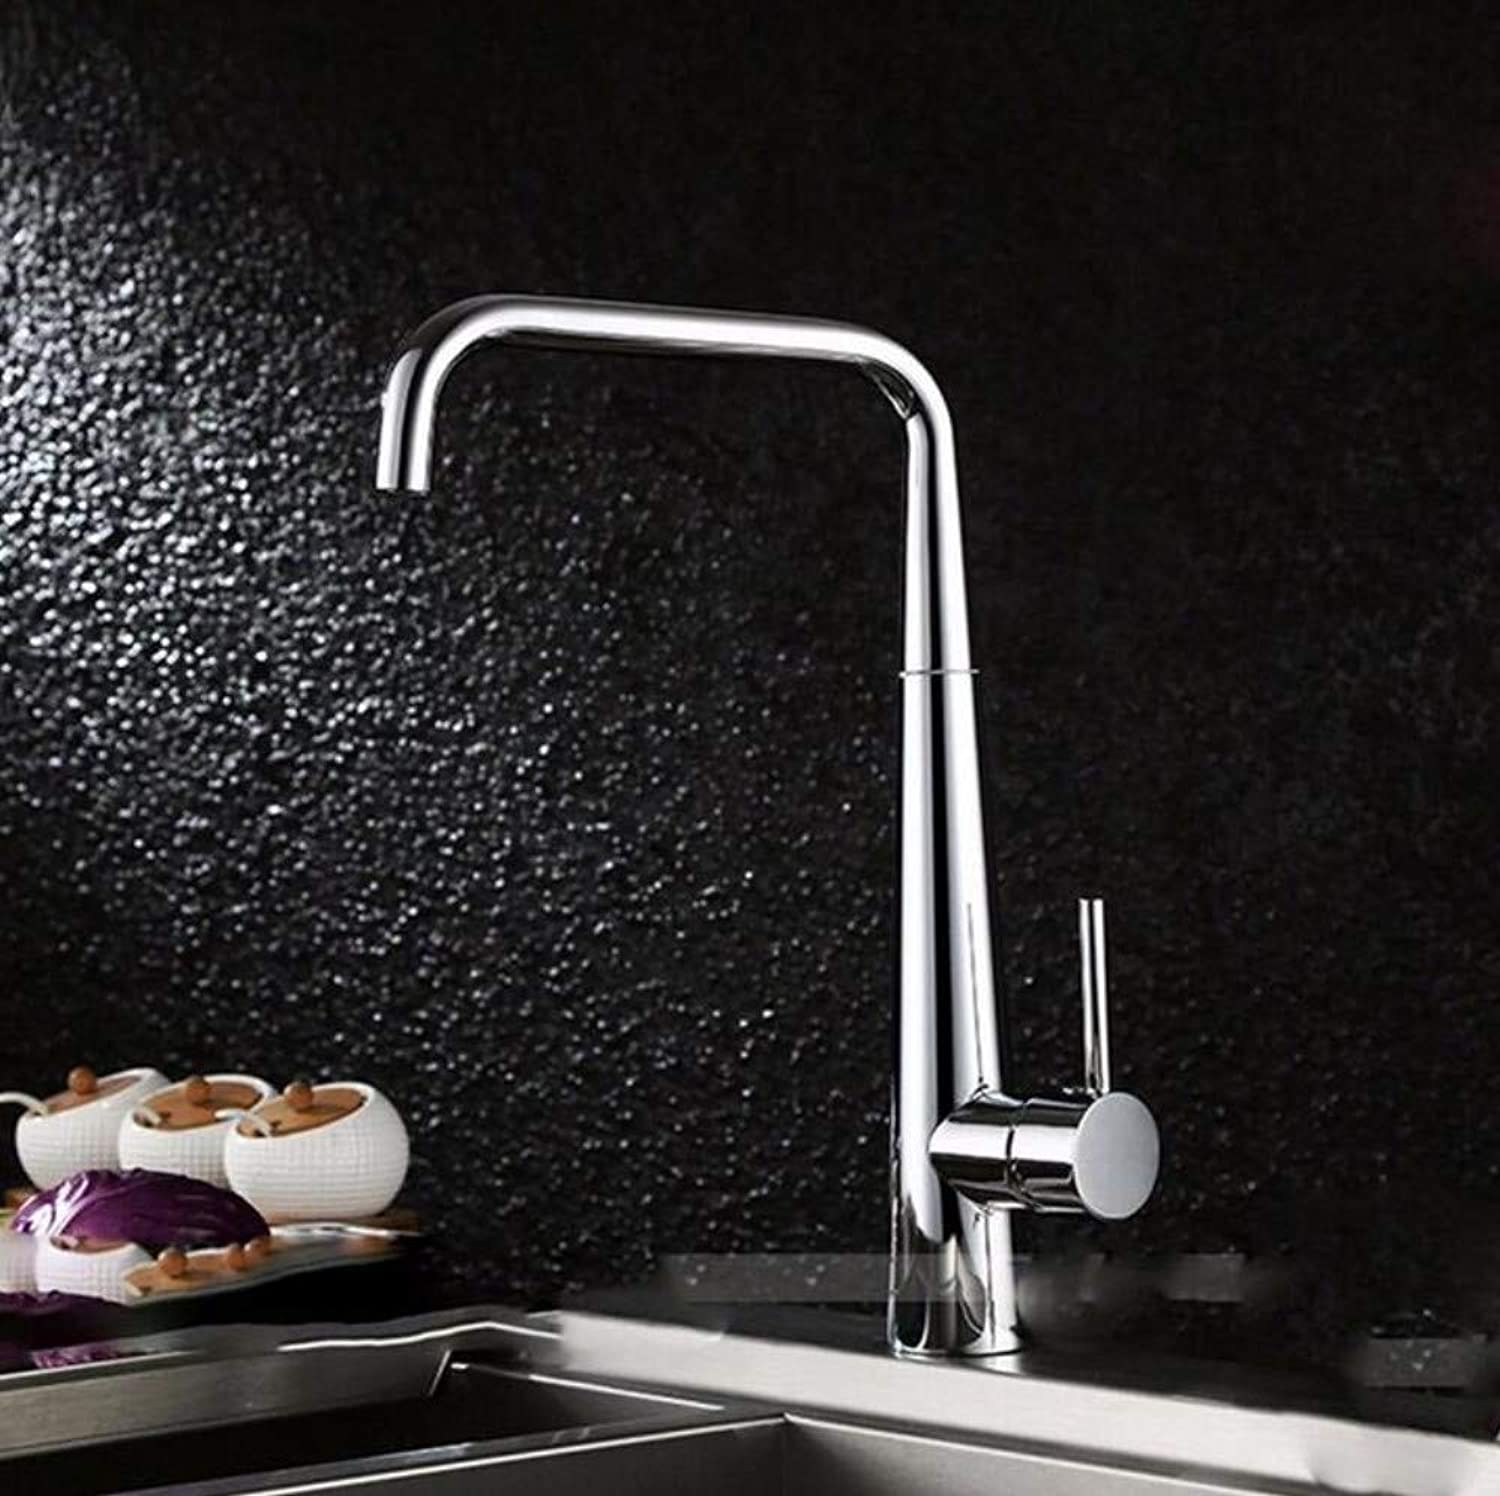 Bathroom Faucet Copper Hot and Cold Kitchen Sink Taps Kitchen Faucet Kitchen Faucet Hot and Cold